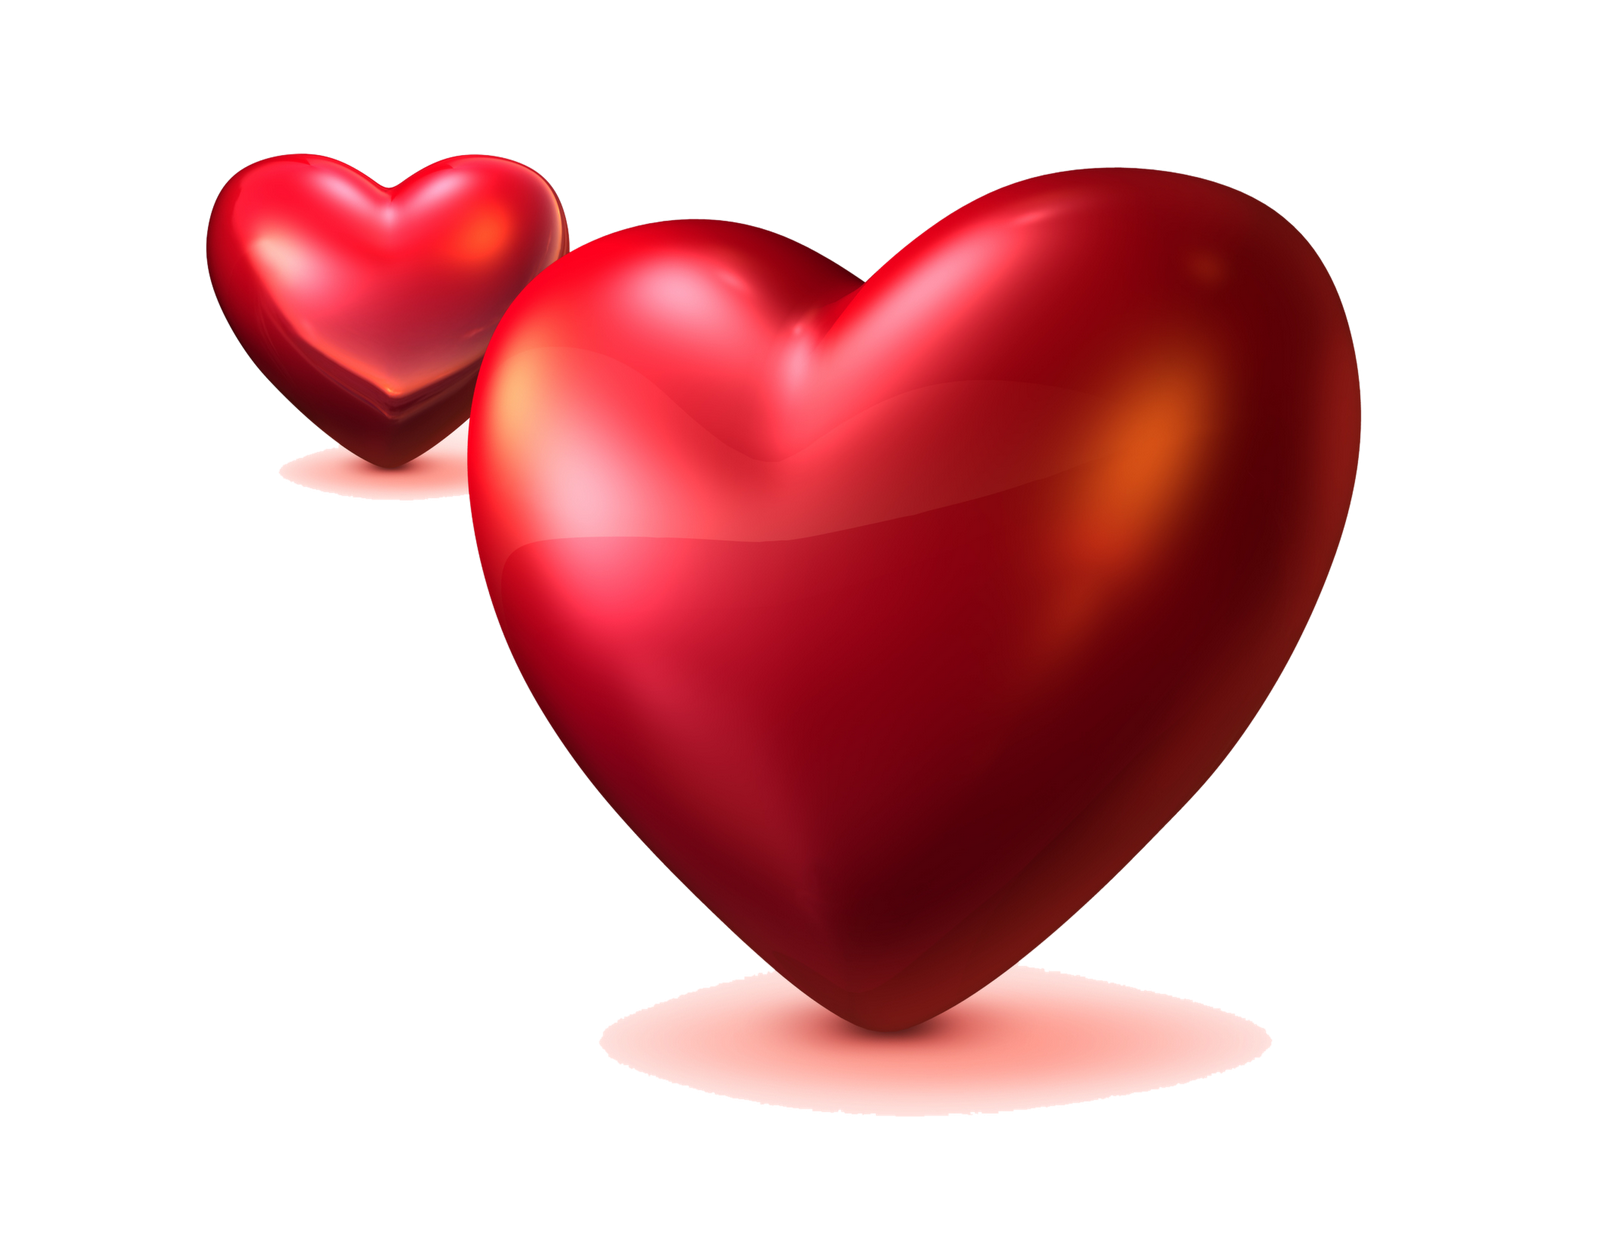 Png love images. Red heart free icons